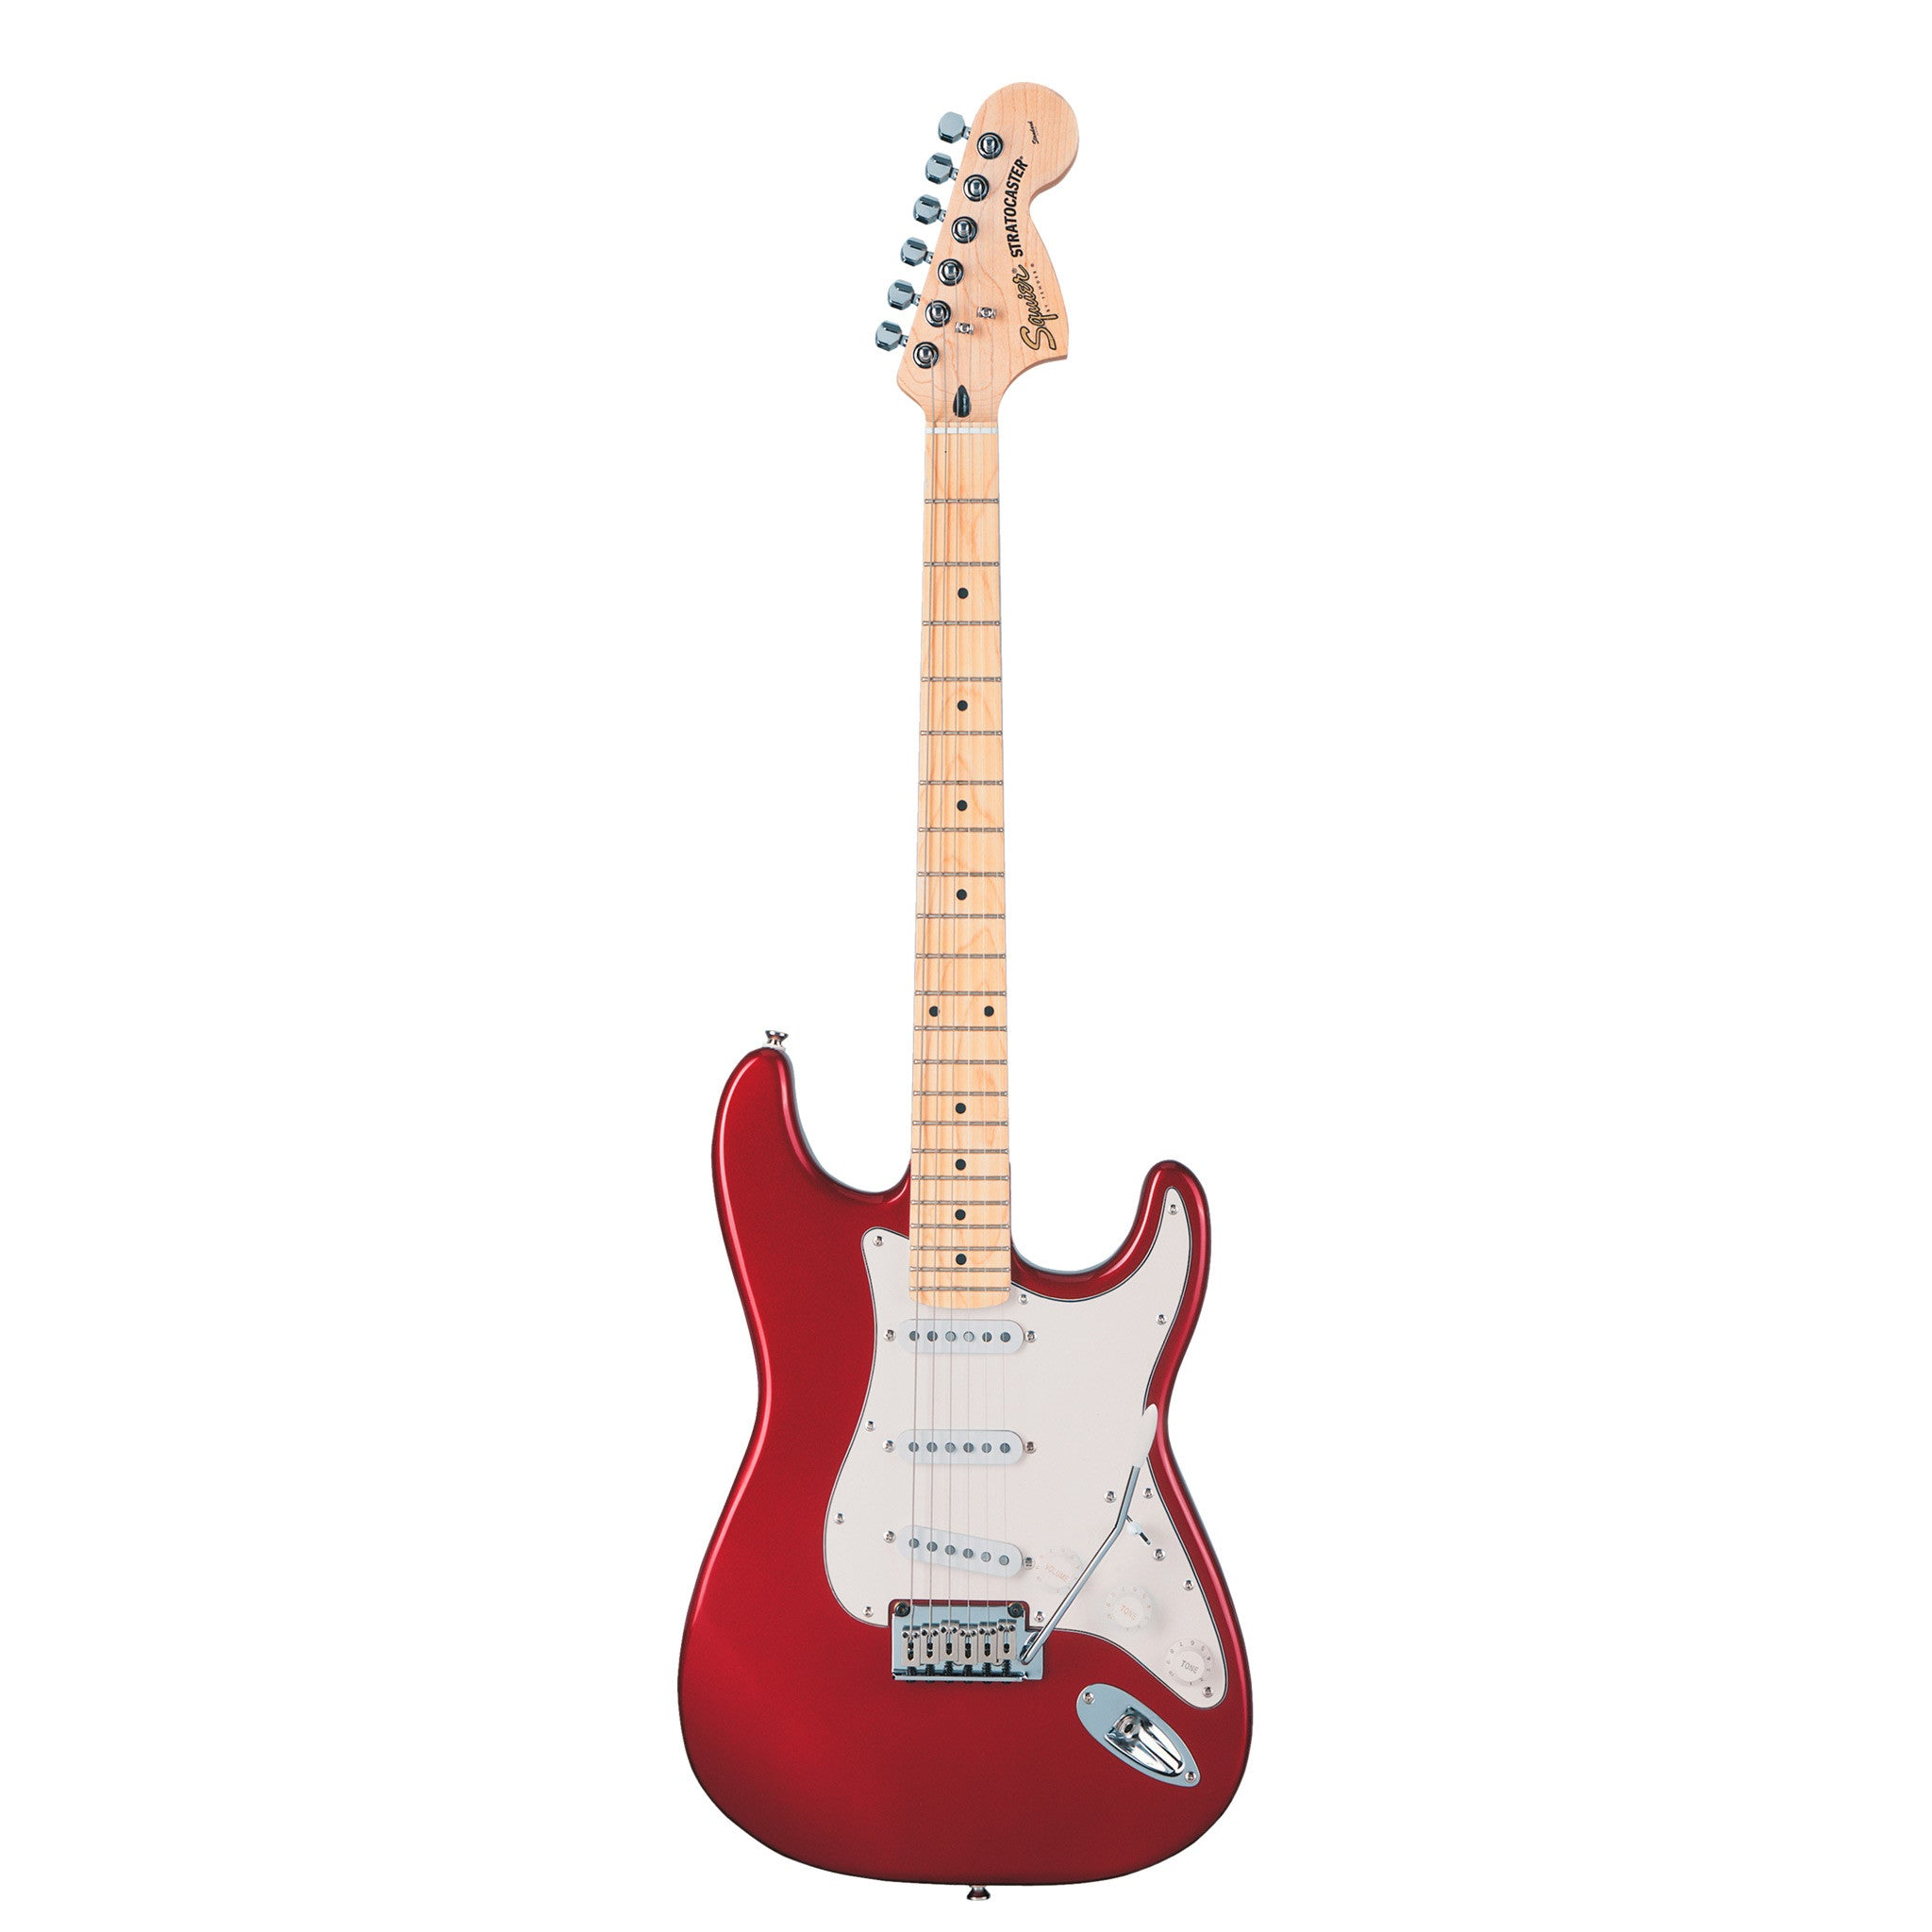 squier standard stratocaster candy apple red mass street music store. Black Bedroom Furniture Sets. Home Design Ideas